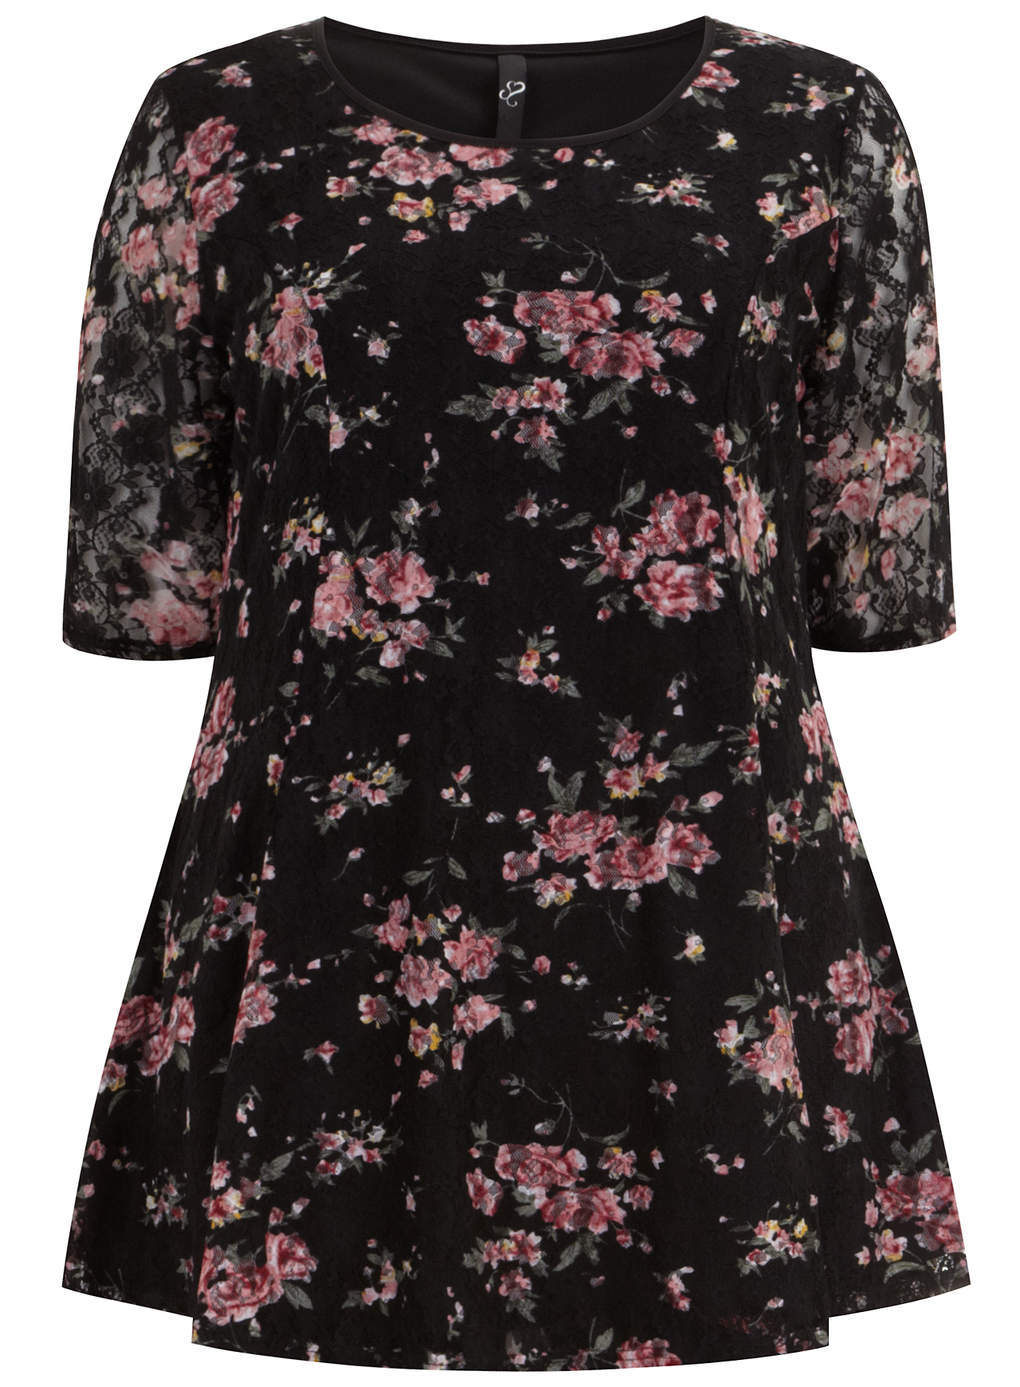 Black Floral Printed Lace Swing Top - neckline: round neck; length: below the bottom; style: t-shirt; predominant colour: black; occasions: casual, creative work; fit: loose; sleeve length: short sleeve; sleeve style: standard; pattern type: fabric; pattern: florals; texture group: jersey - stretchy/drapey; secondary colour: dusky pink; fibres: nylon - stretch; season: s/s 2014; pattern size: big & busy (top)